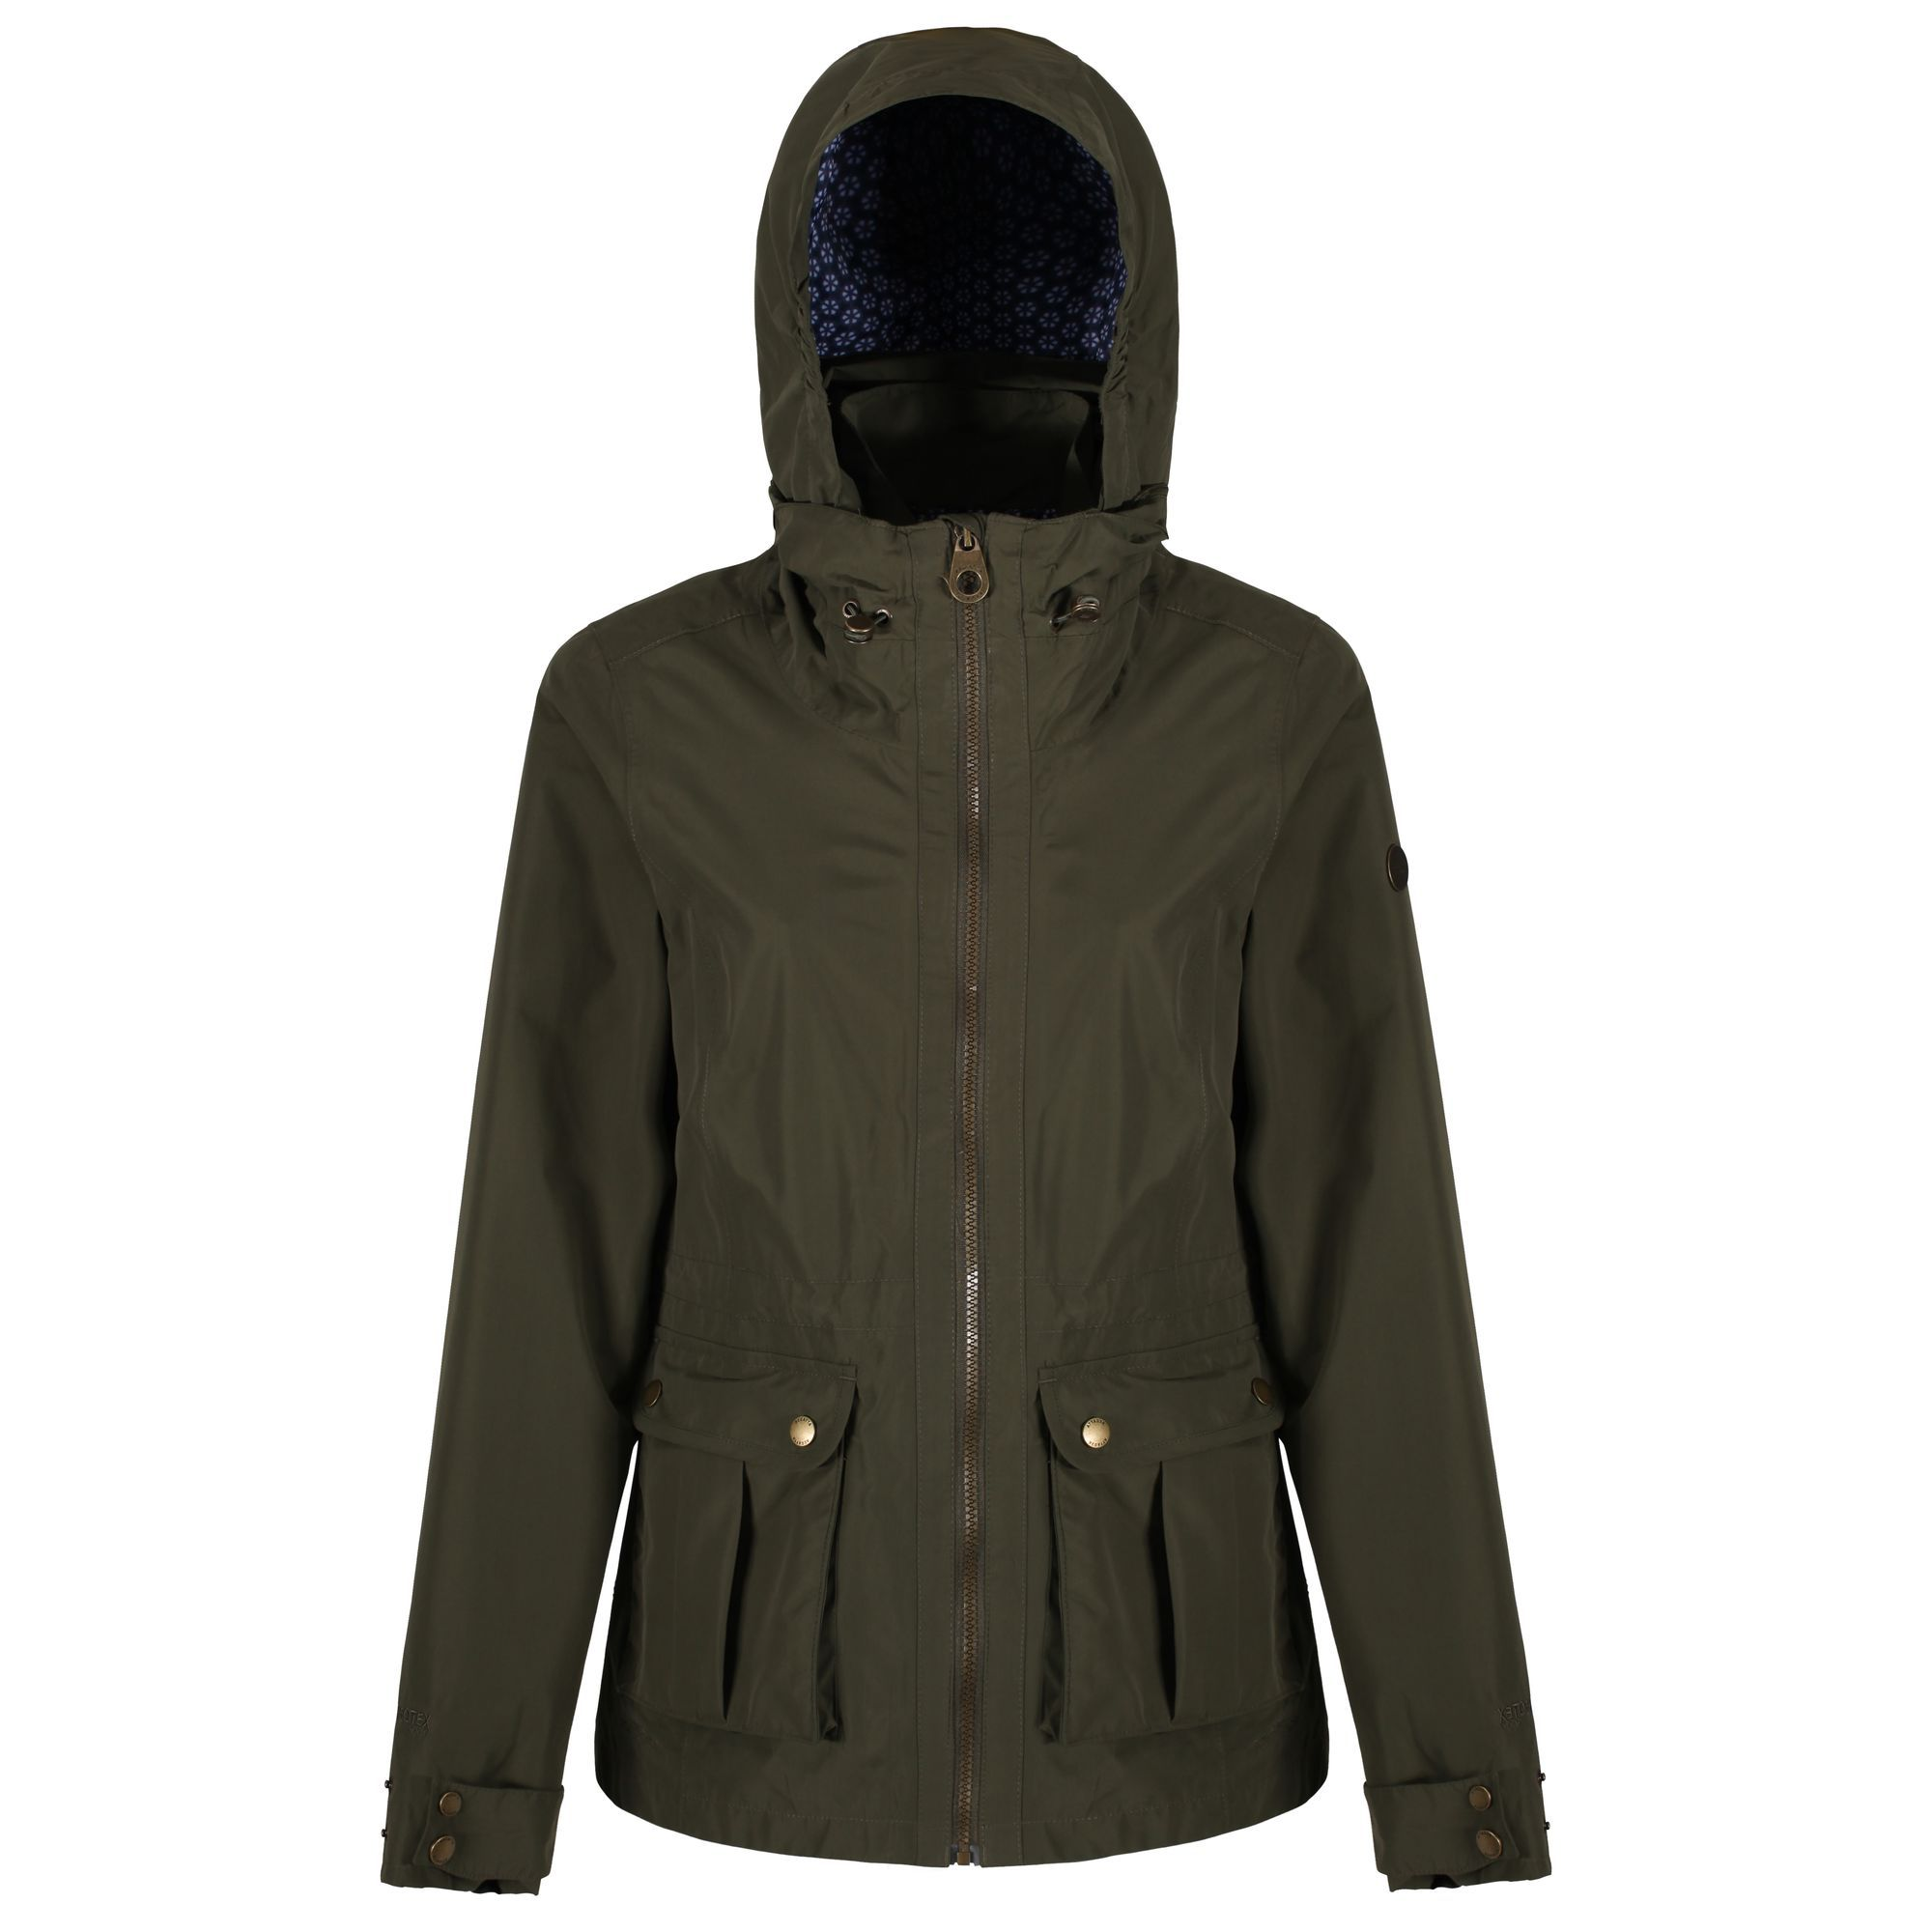 Regatta Nardia Waterproof Jacket, Ivy